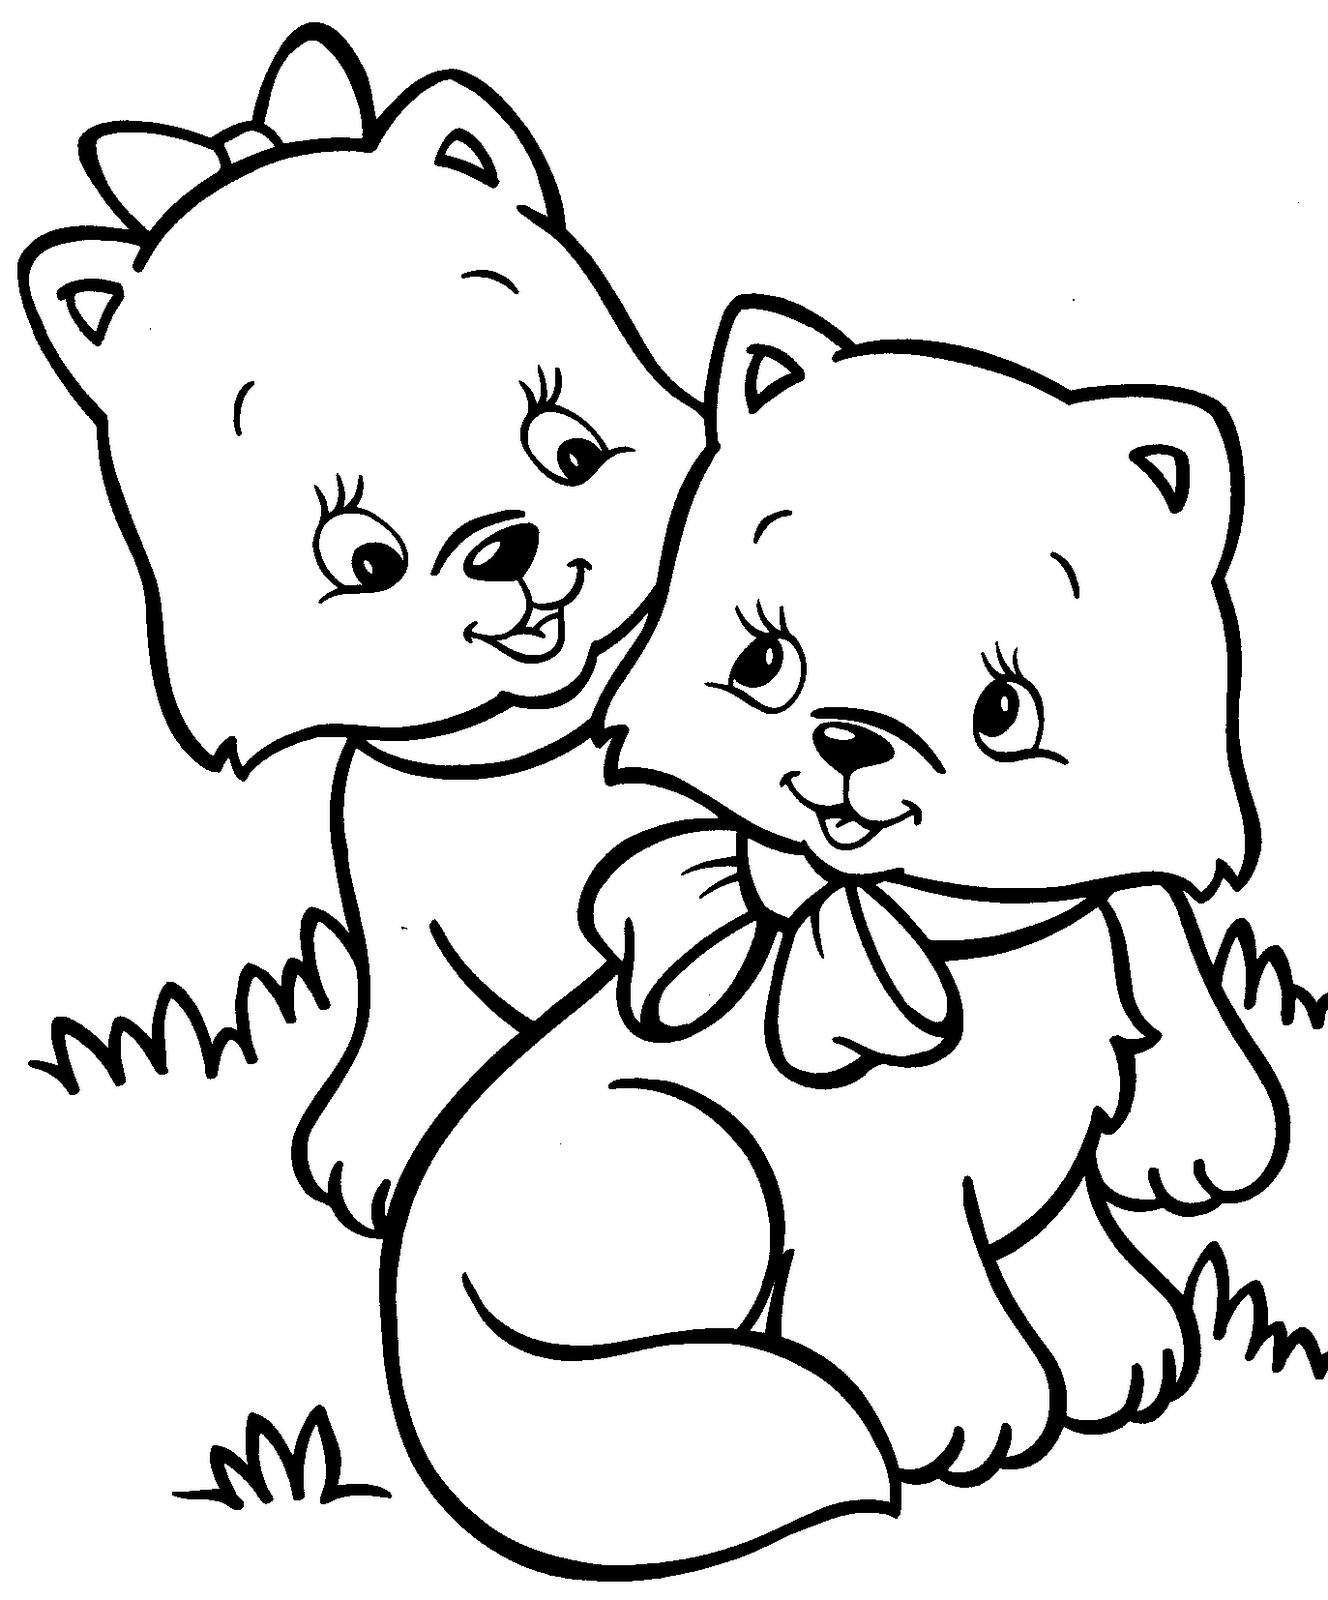 kittens coloring pages to print lovely kitten coloring pages pages coloring print kittens to